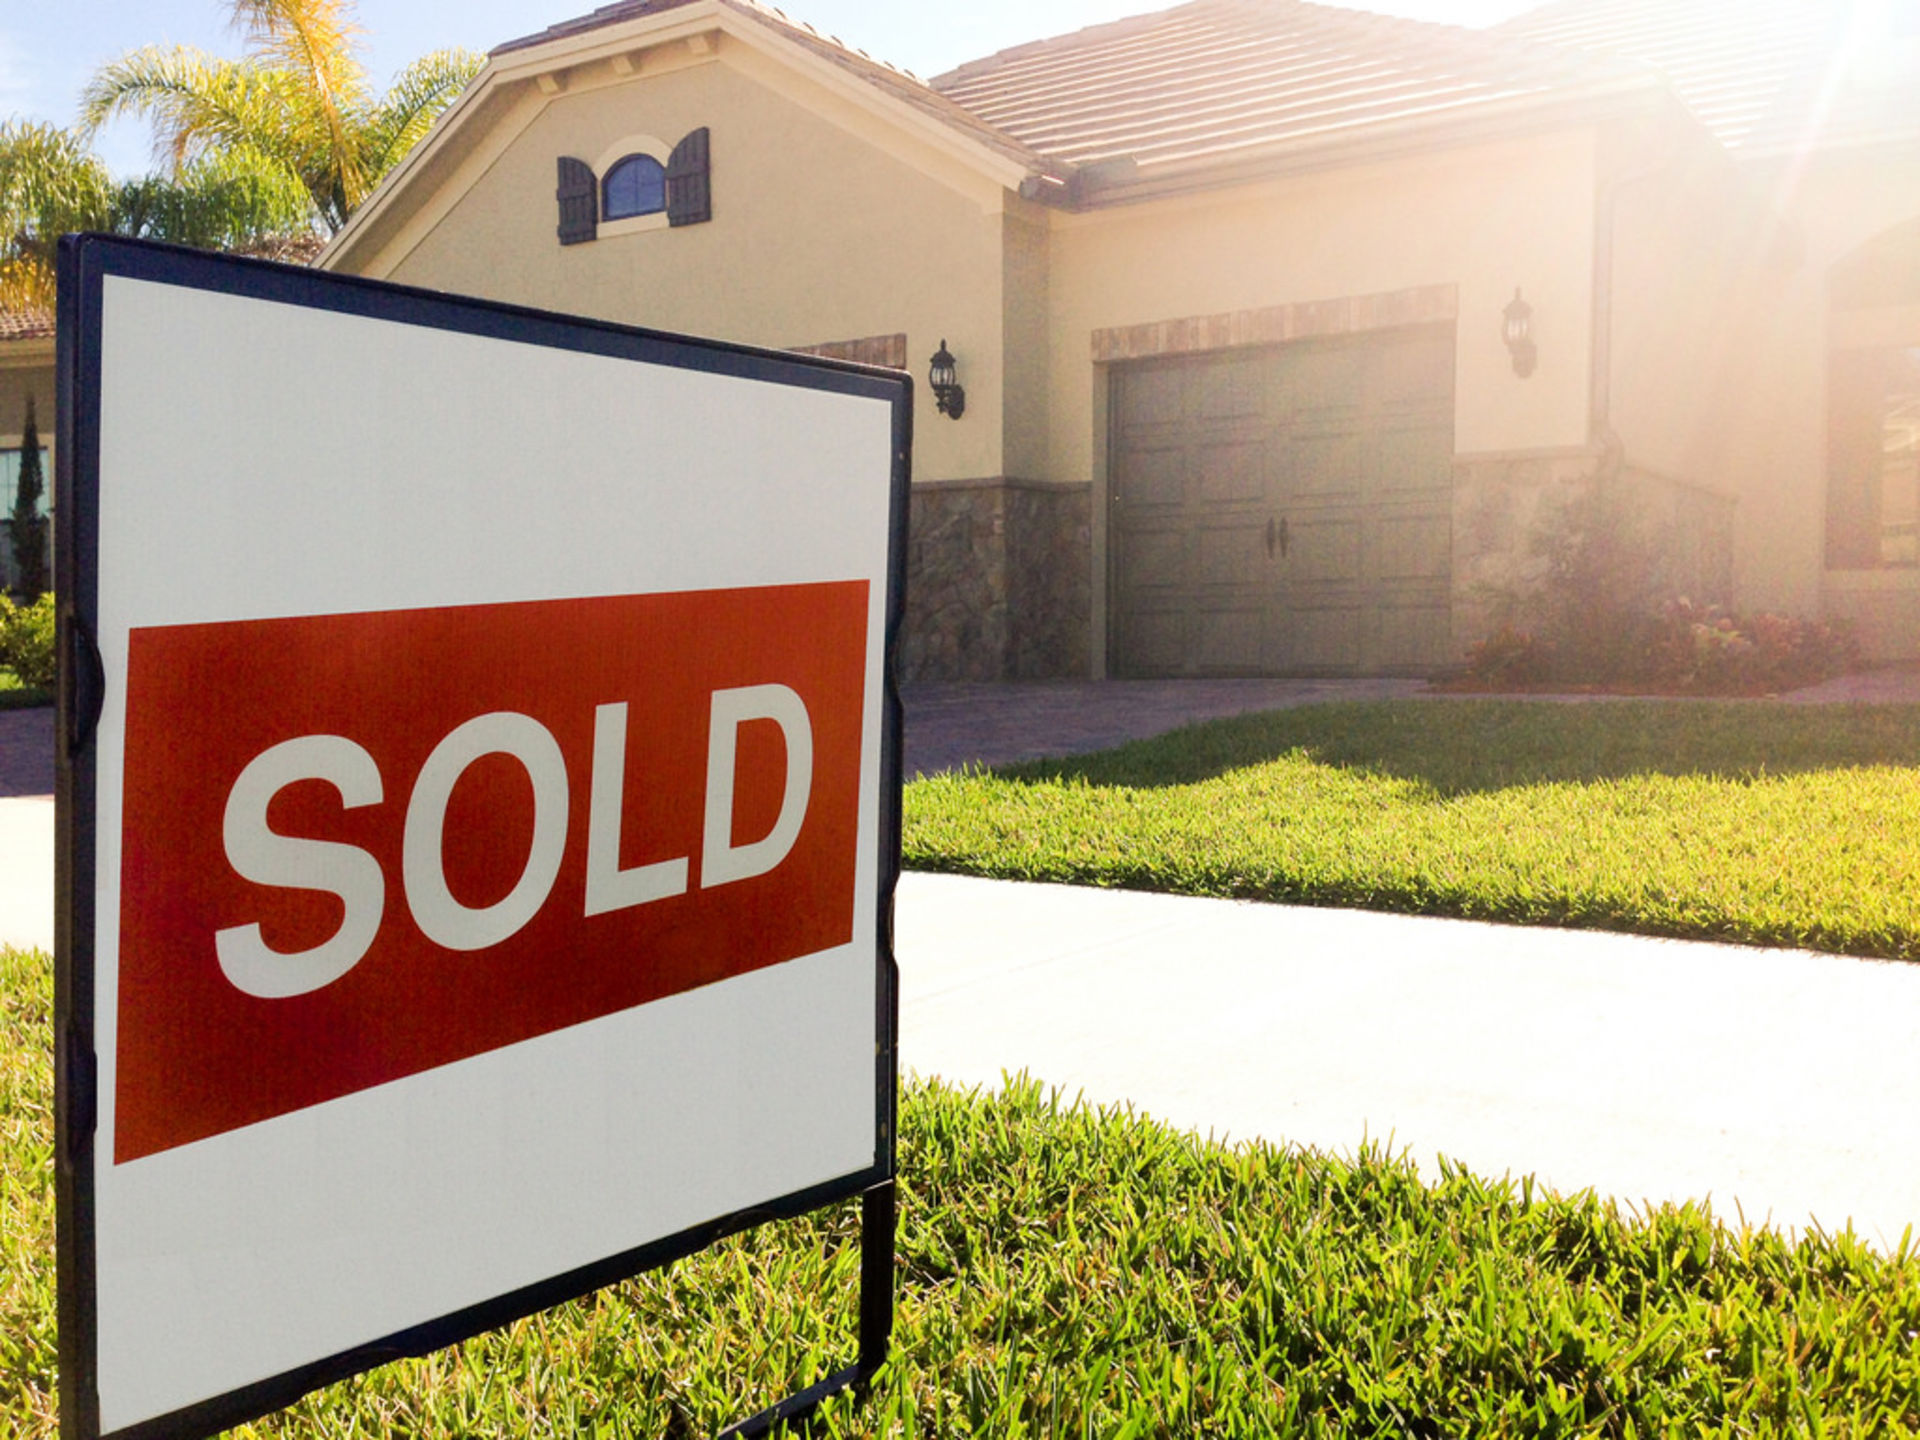 What's Up in the Fox Island Real Estate Market? Sales!